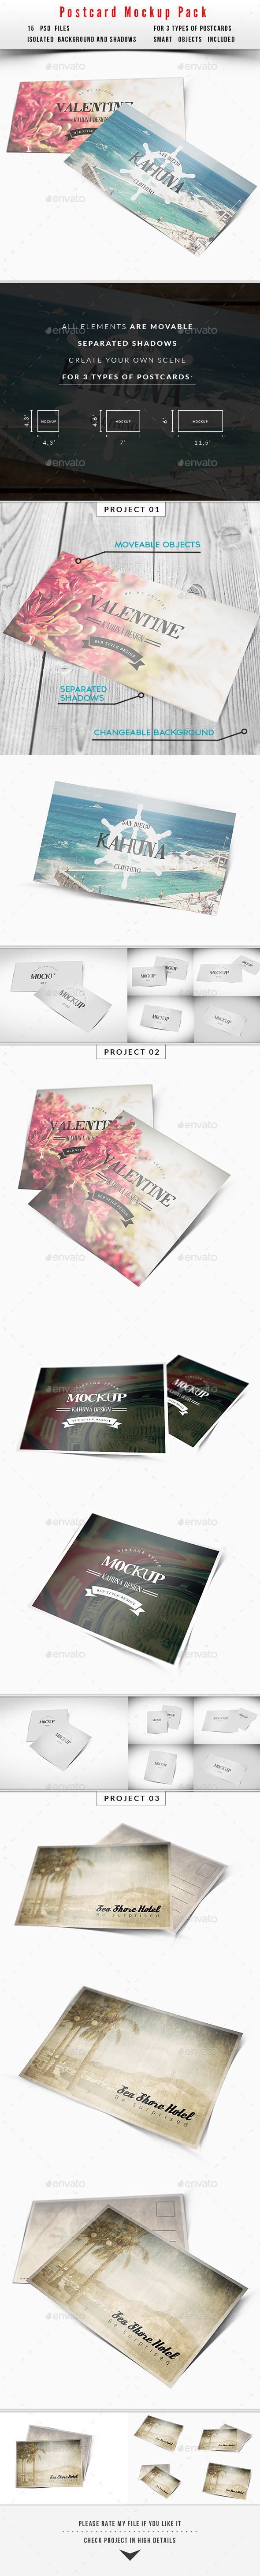 Postcard / Invitation Mockup Pack - Miscellaneous Print